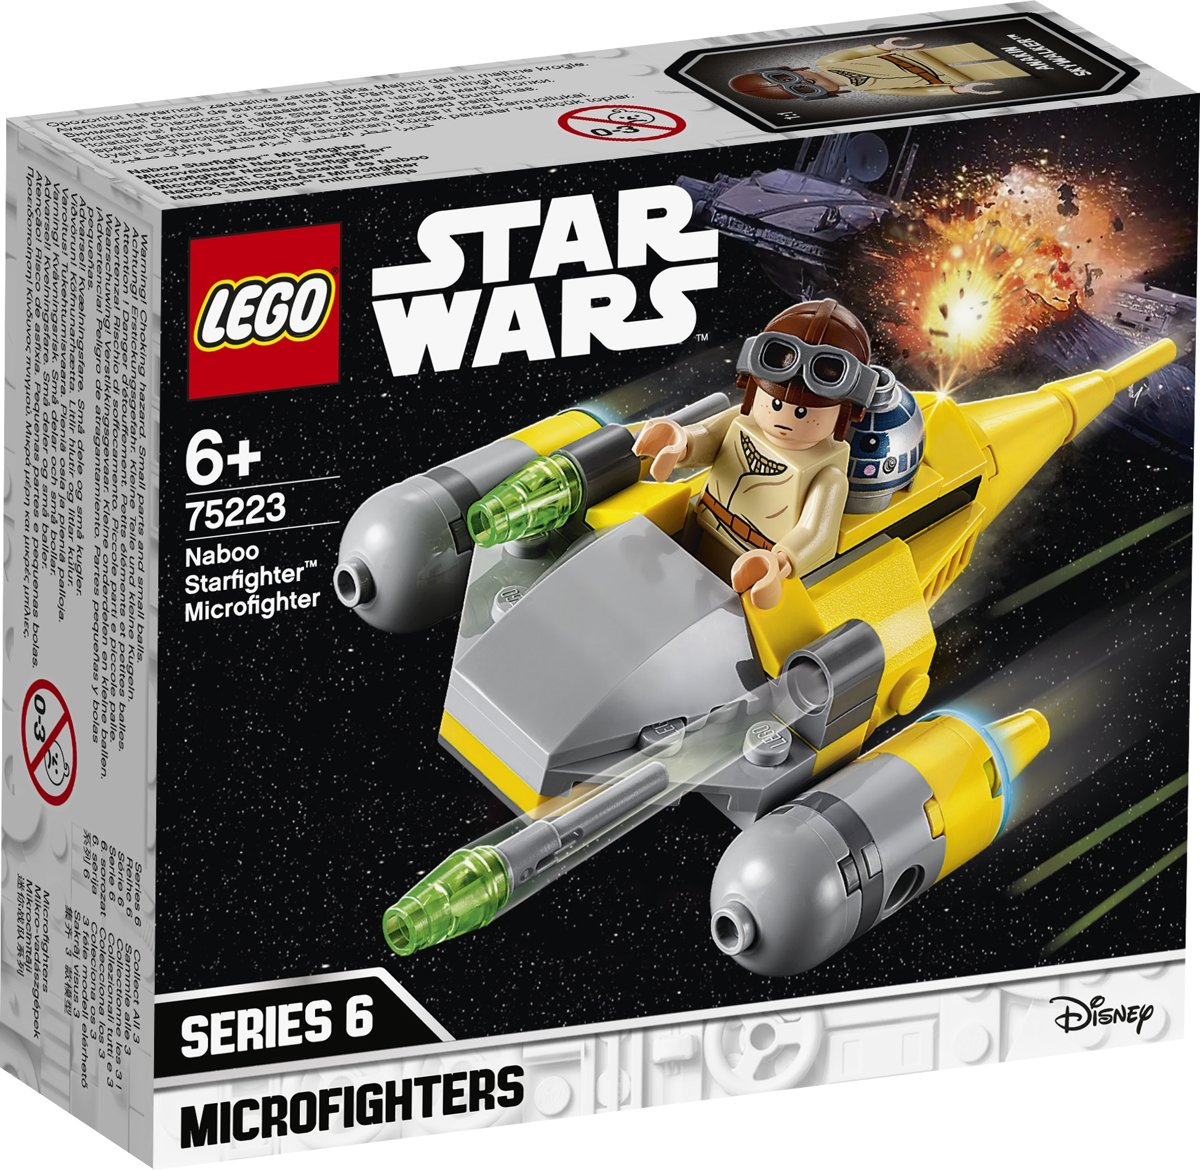 Star Wars Naboo Starfighter Microfighter - 75223